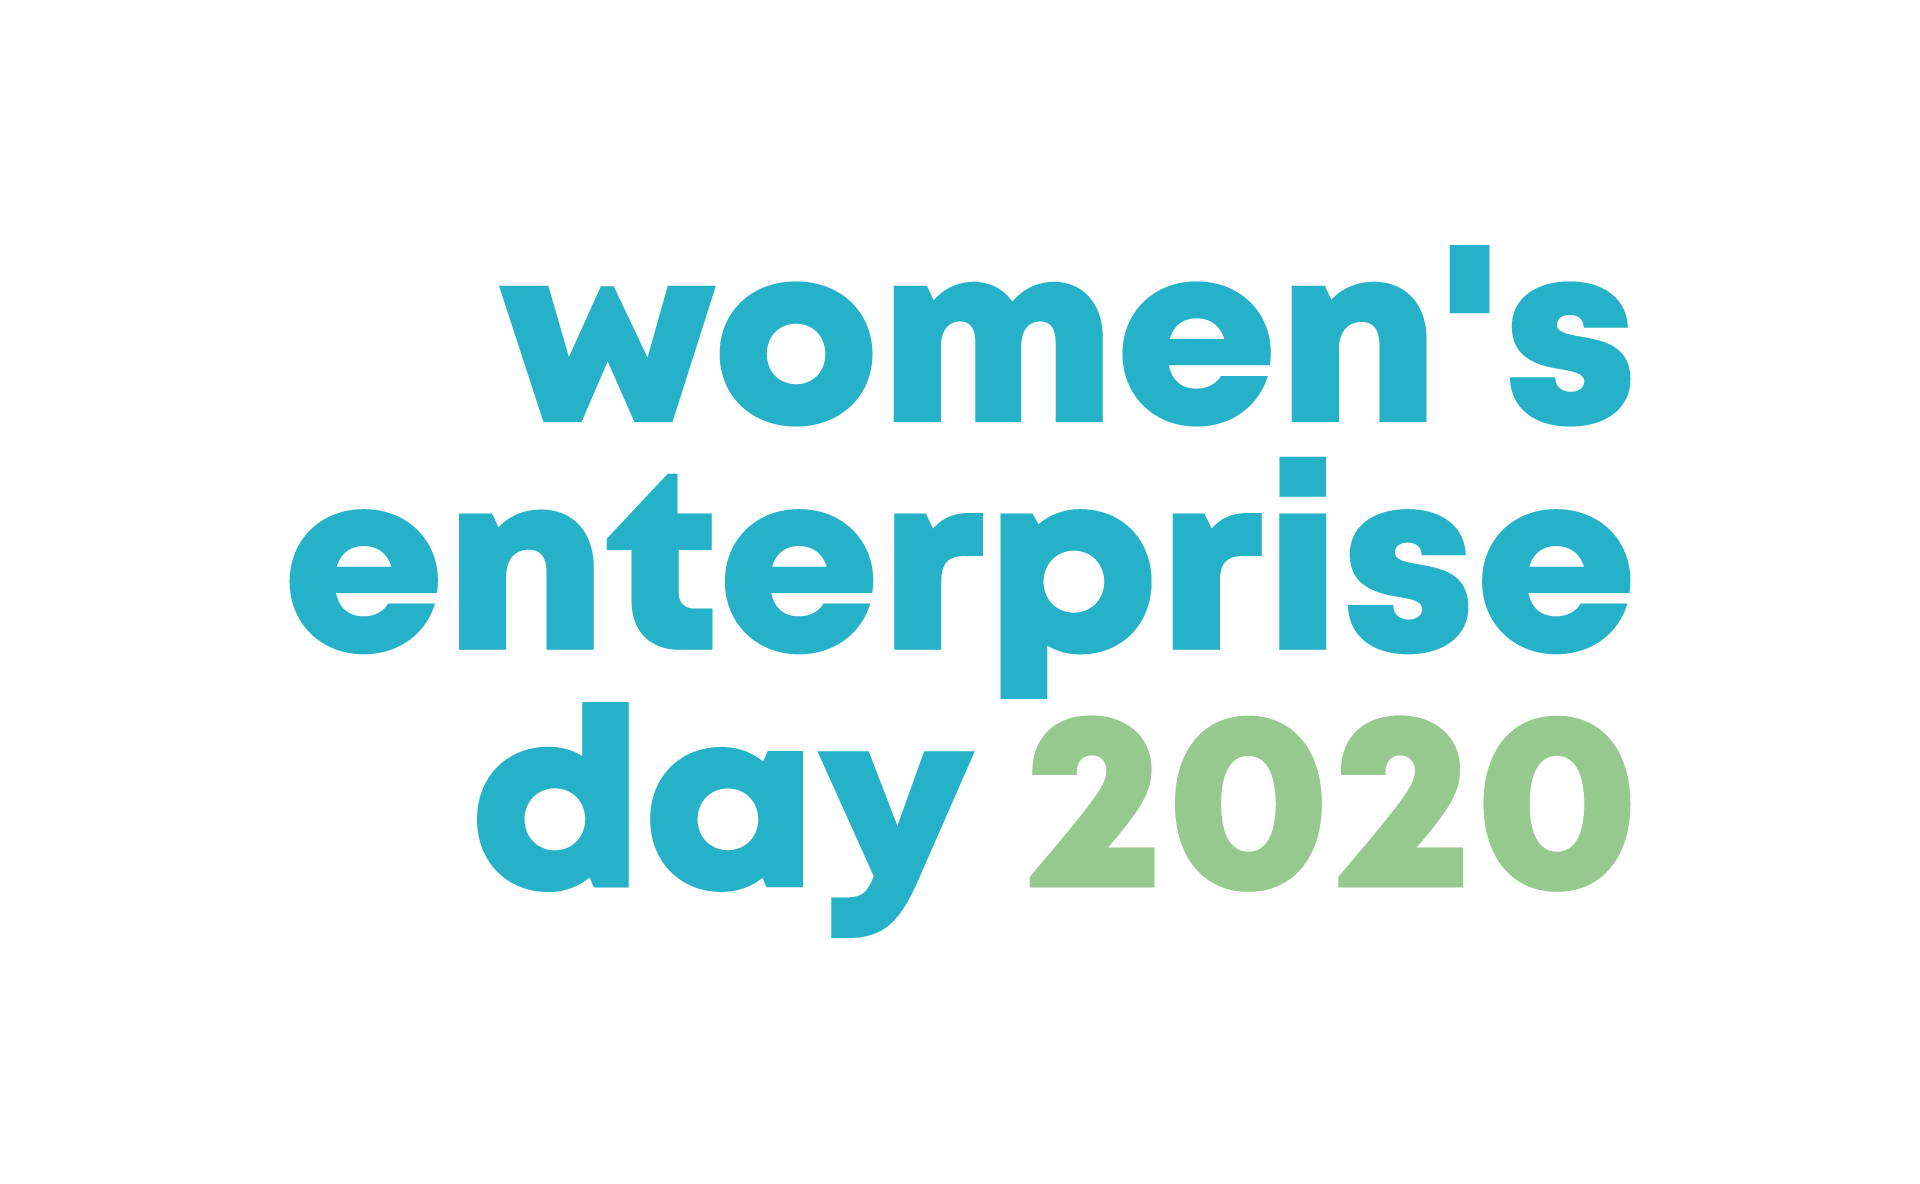 Women's Enterprise Day